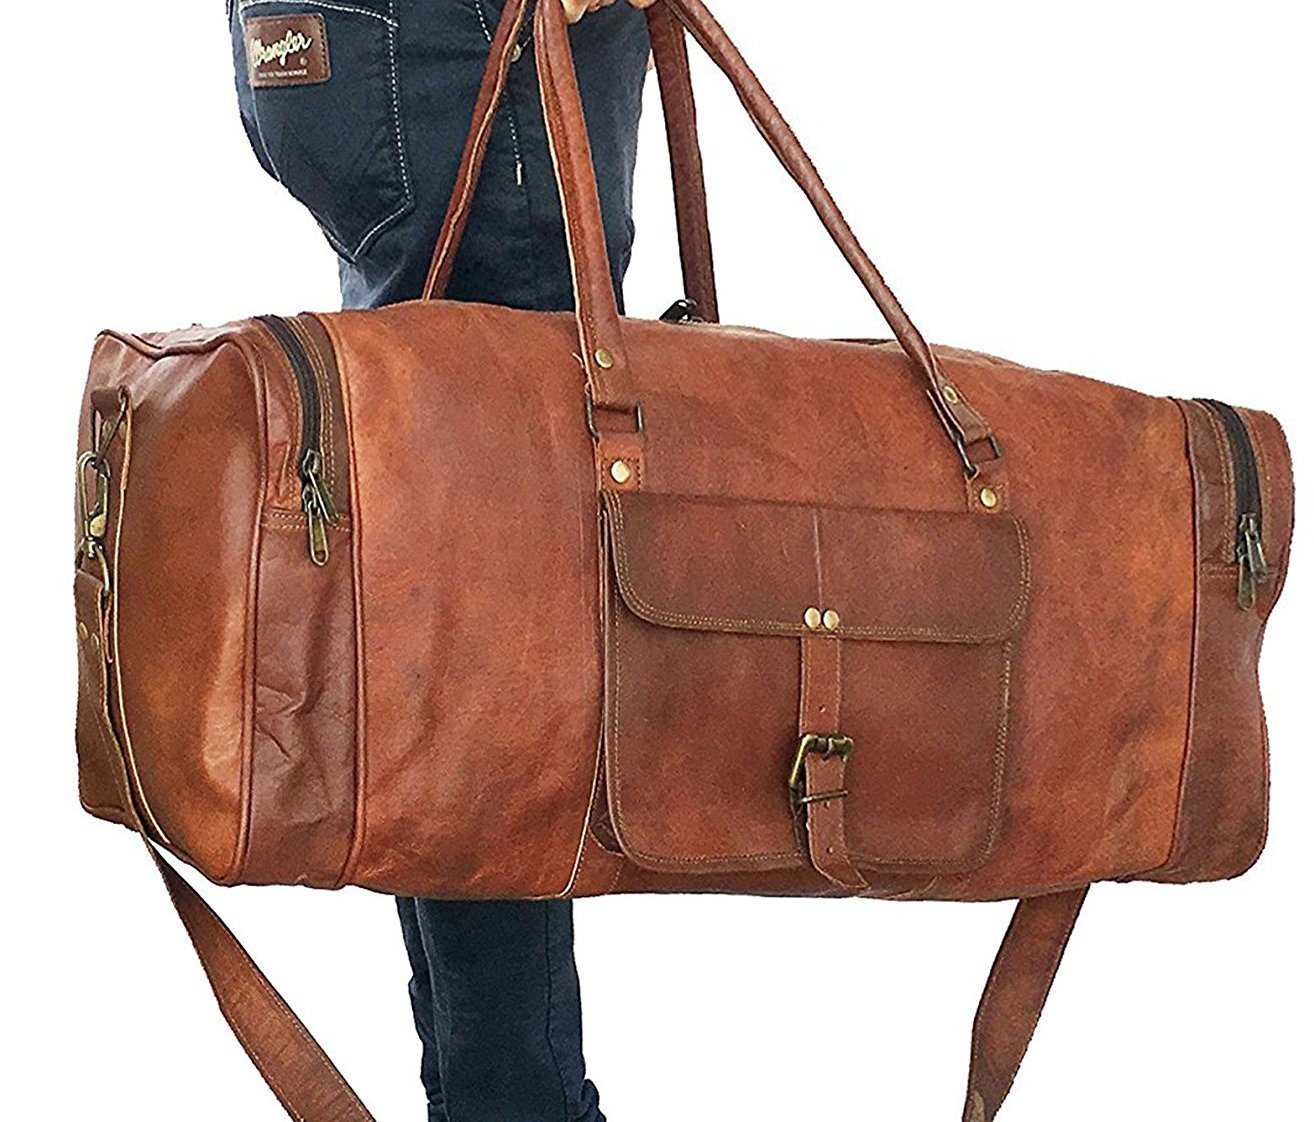 d6c1cd1c3b Amazon.com  Leather bag 24 Inch Square Duffel Travel Duffle Gym Sports  Overnight Weekend Leather Bag By kk s leather  Computers   Accessories